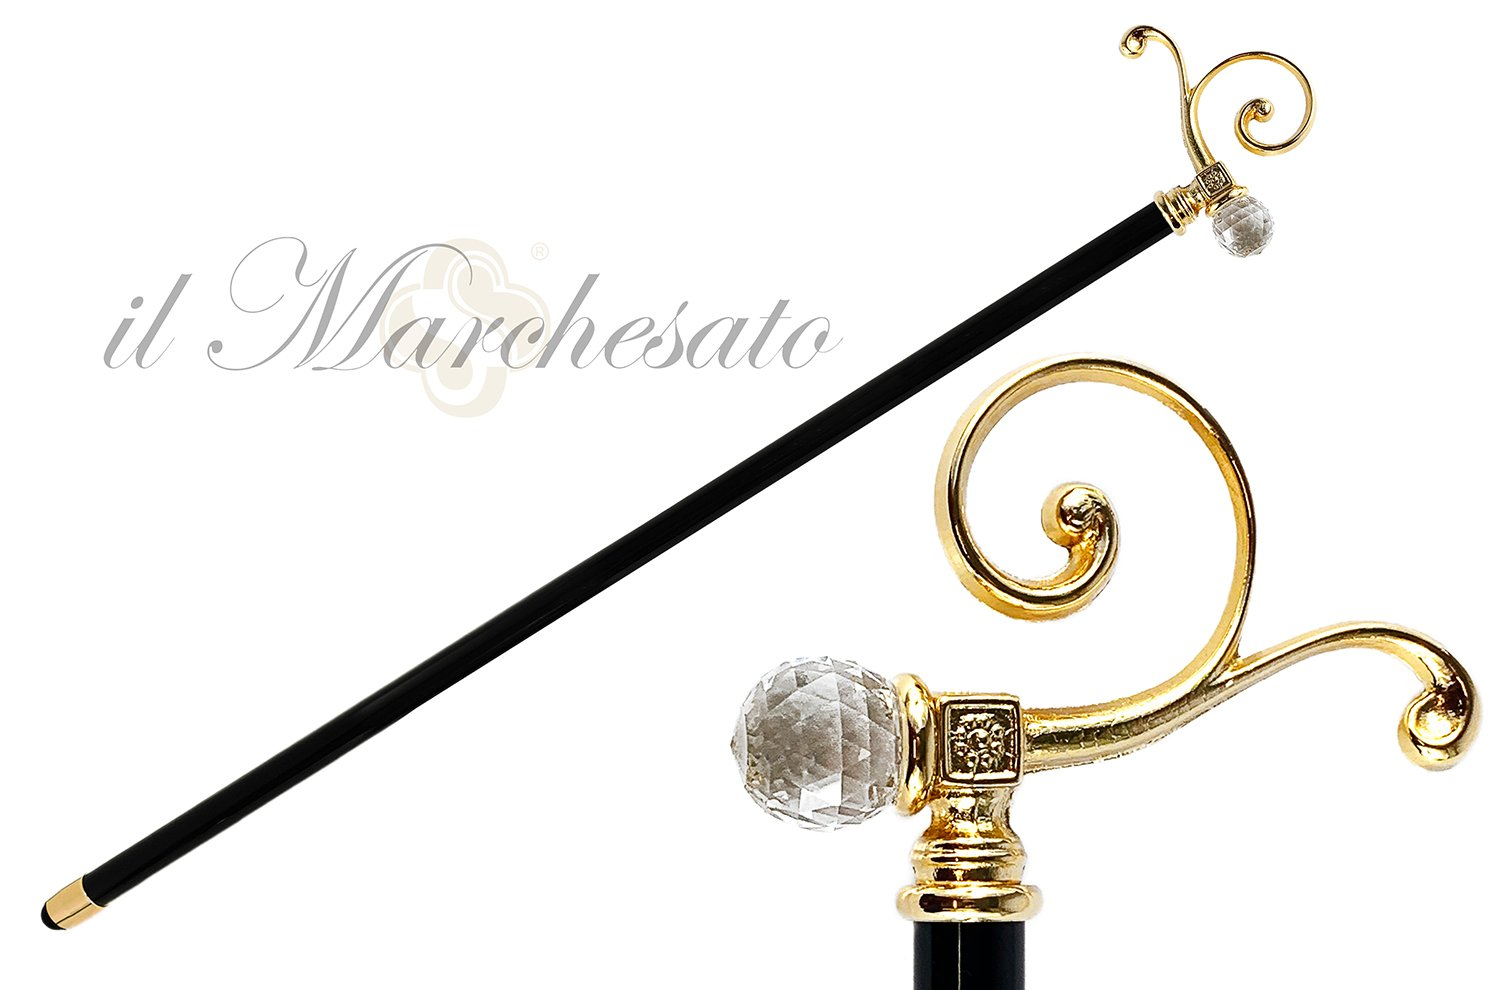 BEAUTY COLLECTIBLE BRASS WALKING STICKS